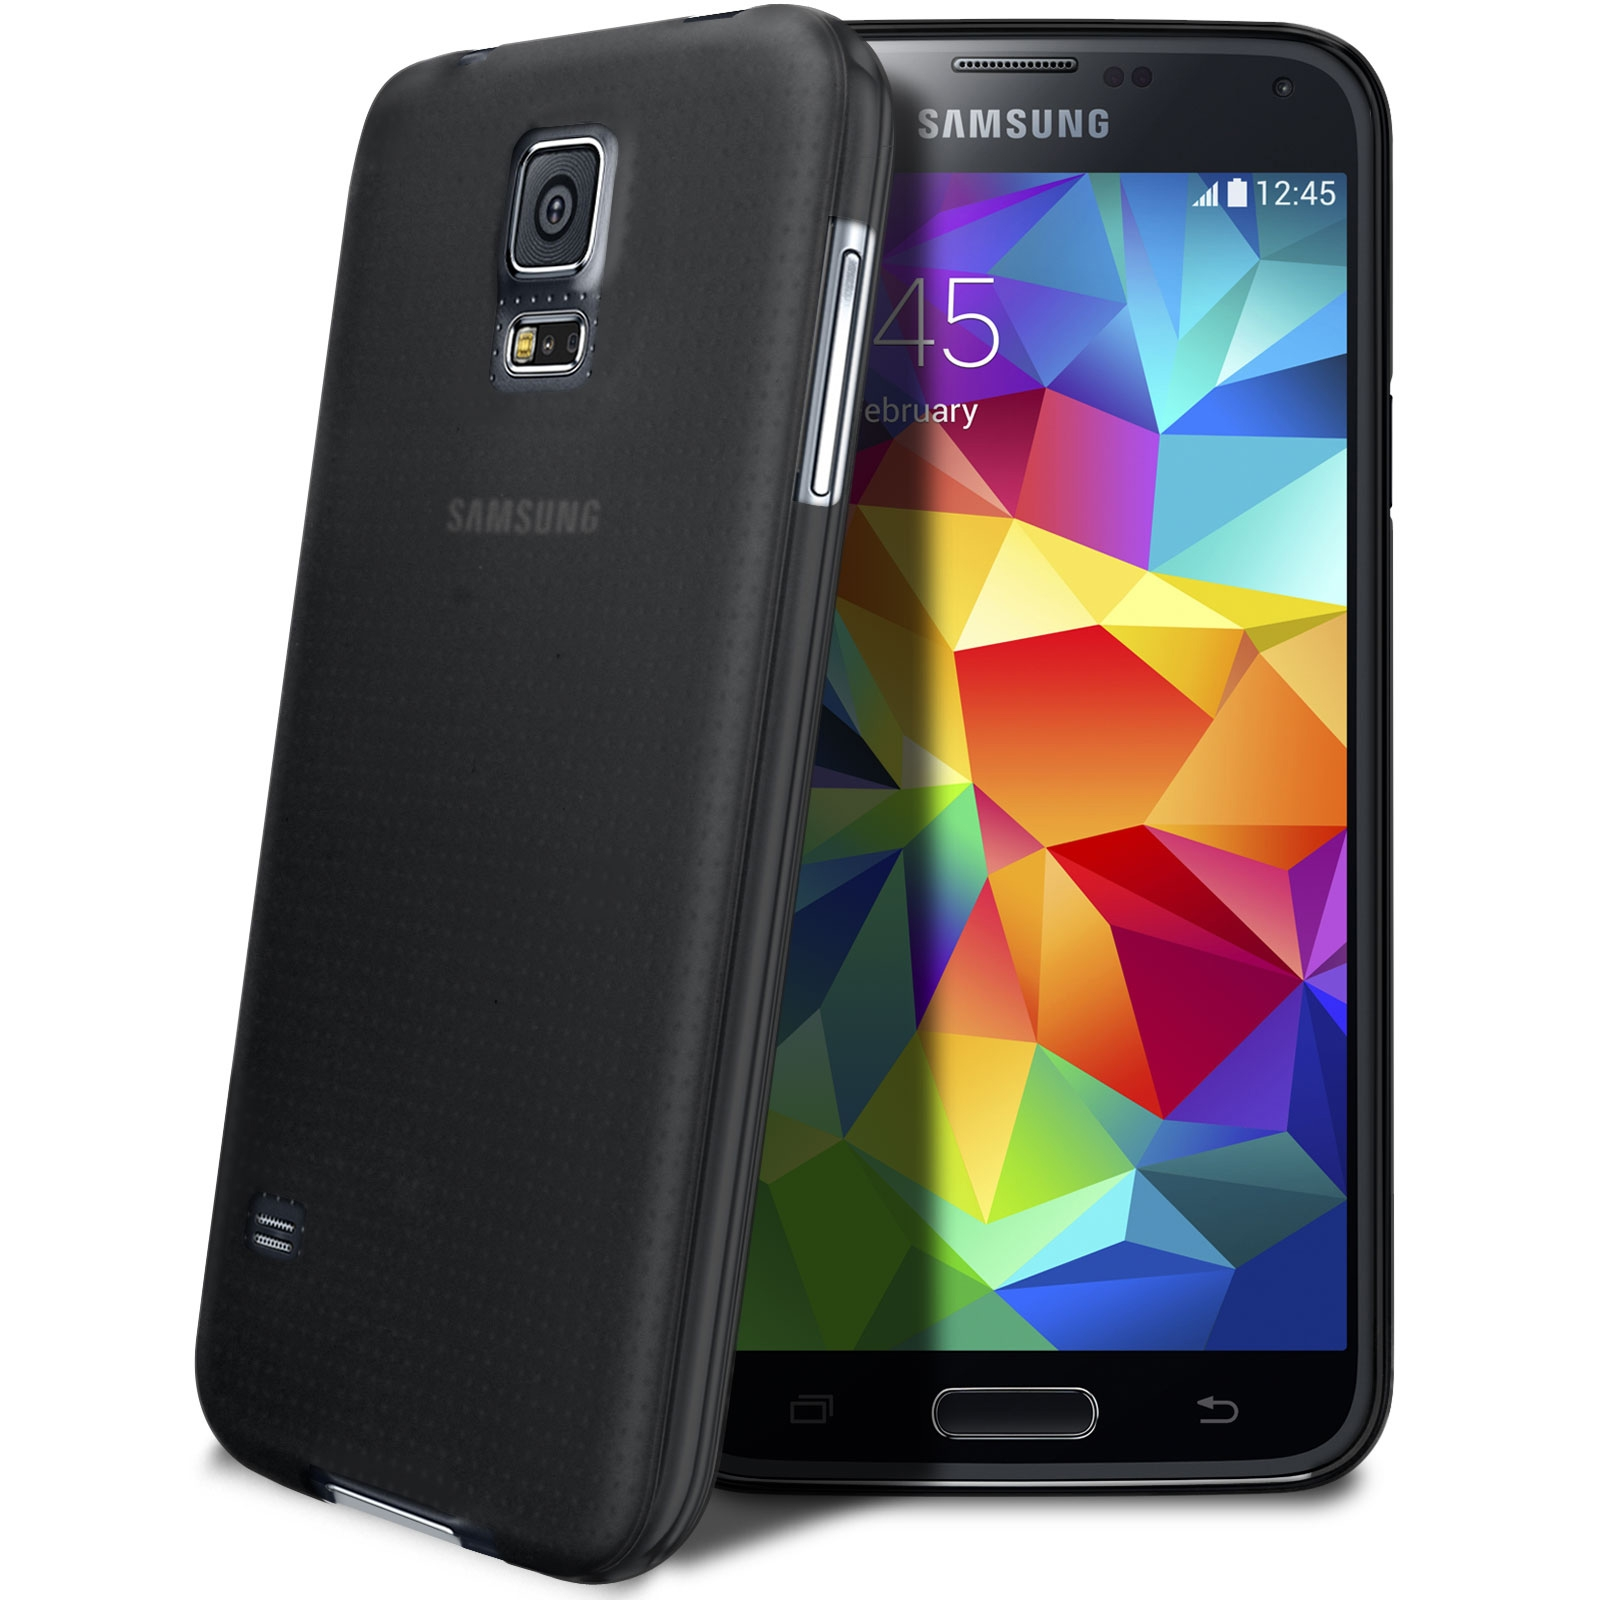 samsung galaxy s5 un prix tr s int ressant chez. Black Bedroom Furniture Sets. Home Design Ideas